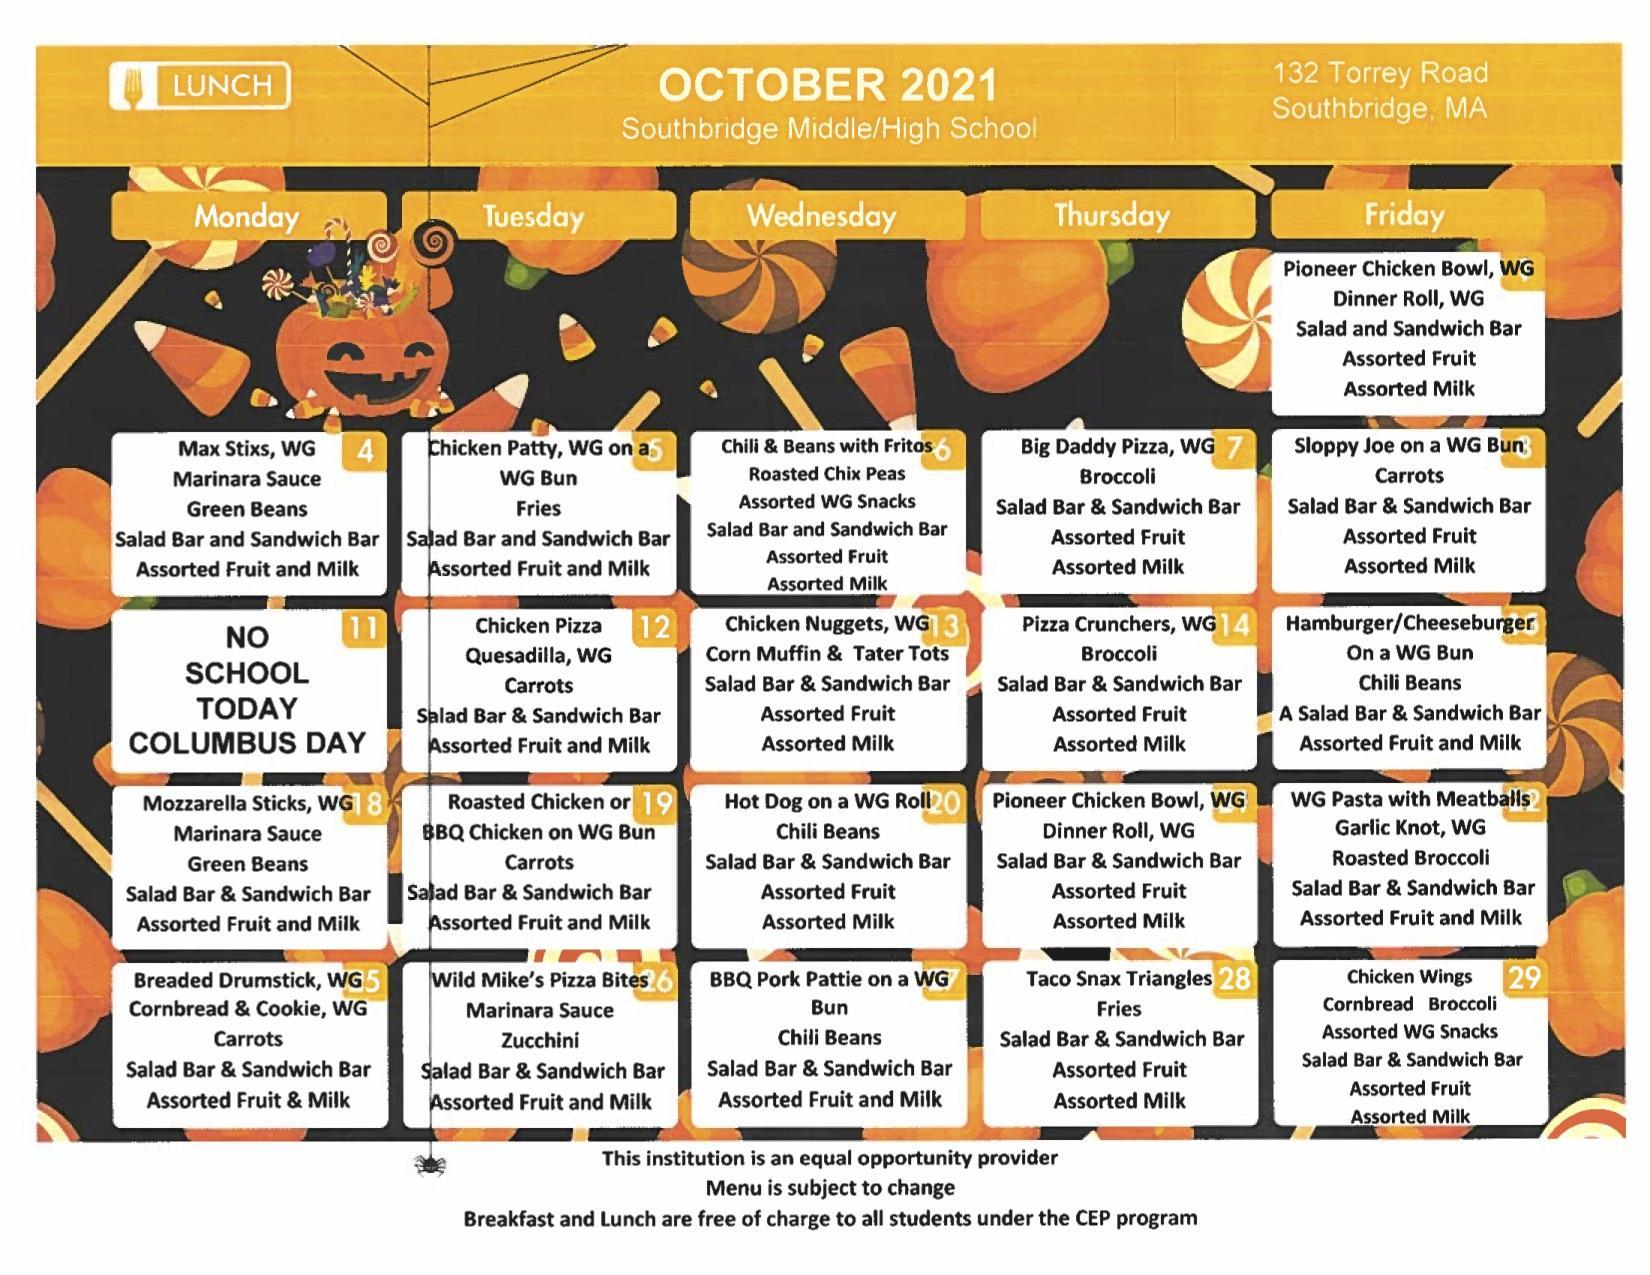 October 2021 menu for Southbridge Middle High School. Also available as a download on this page